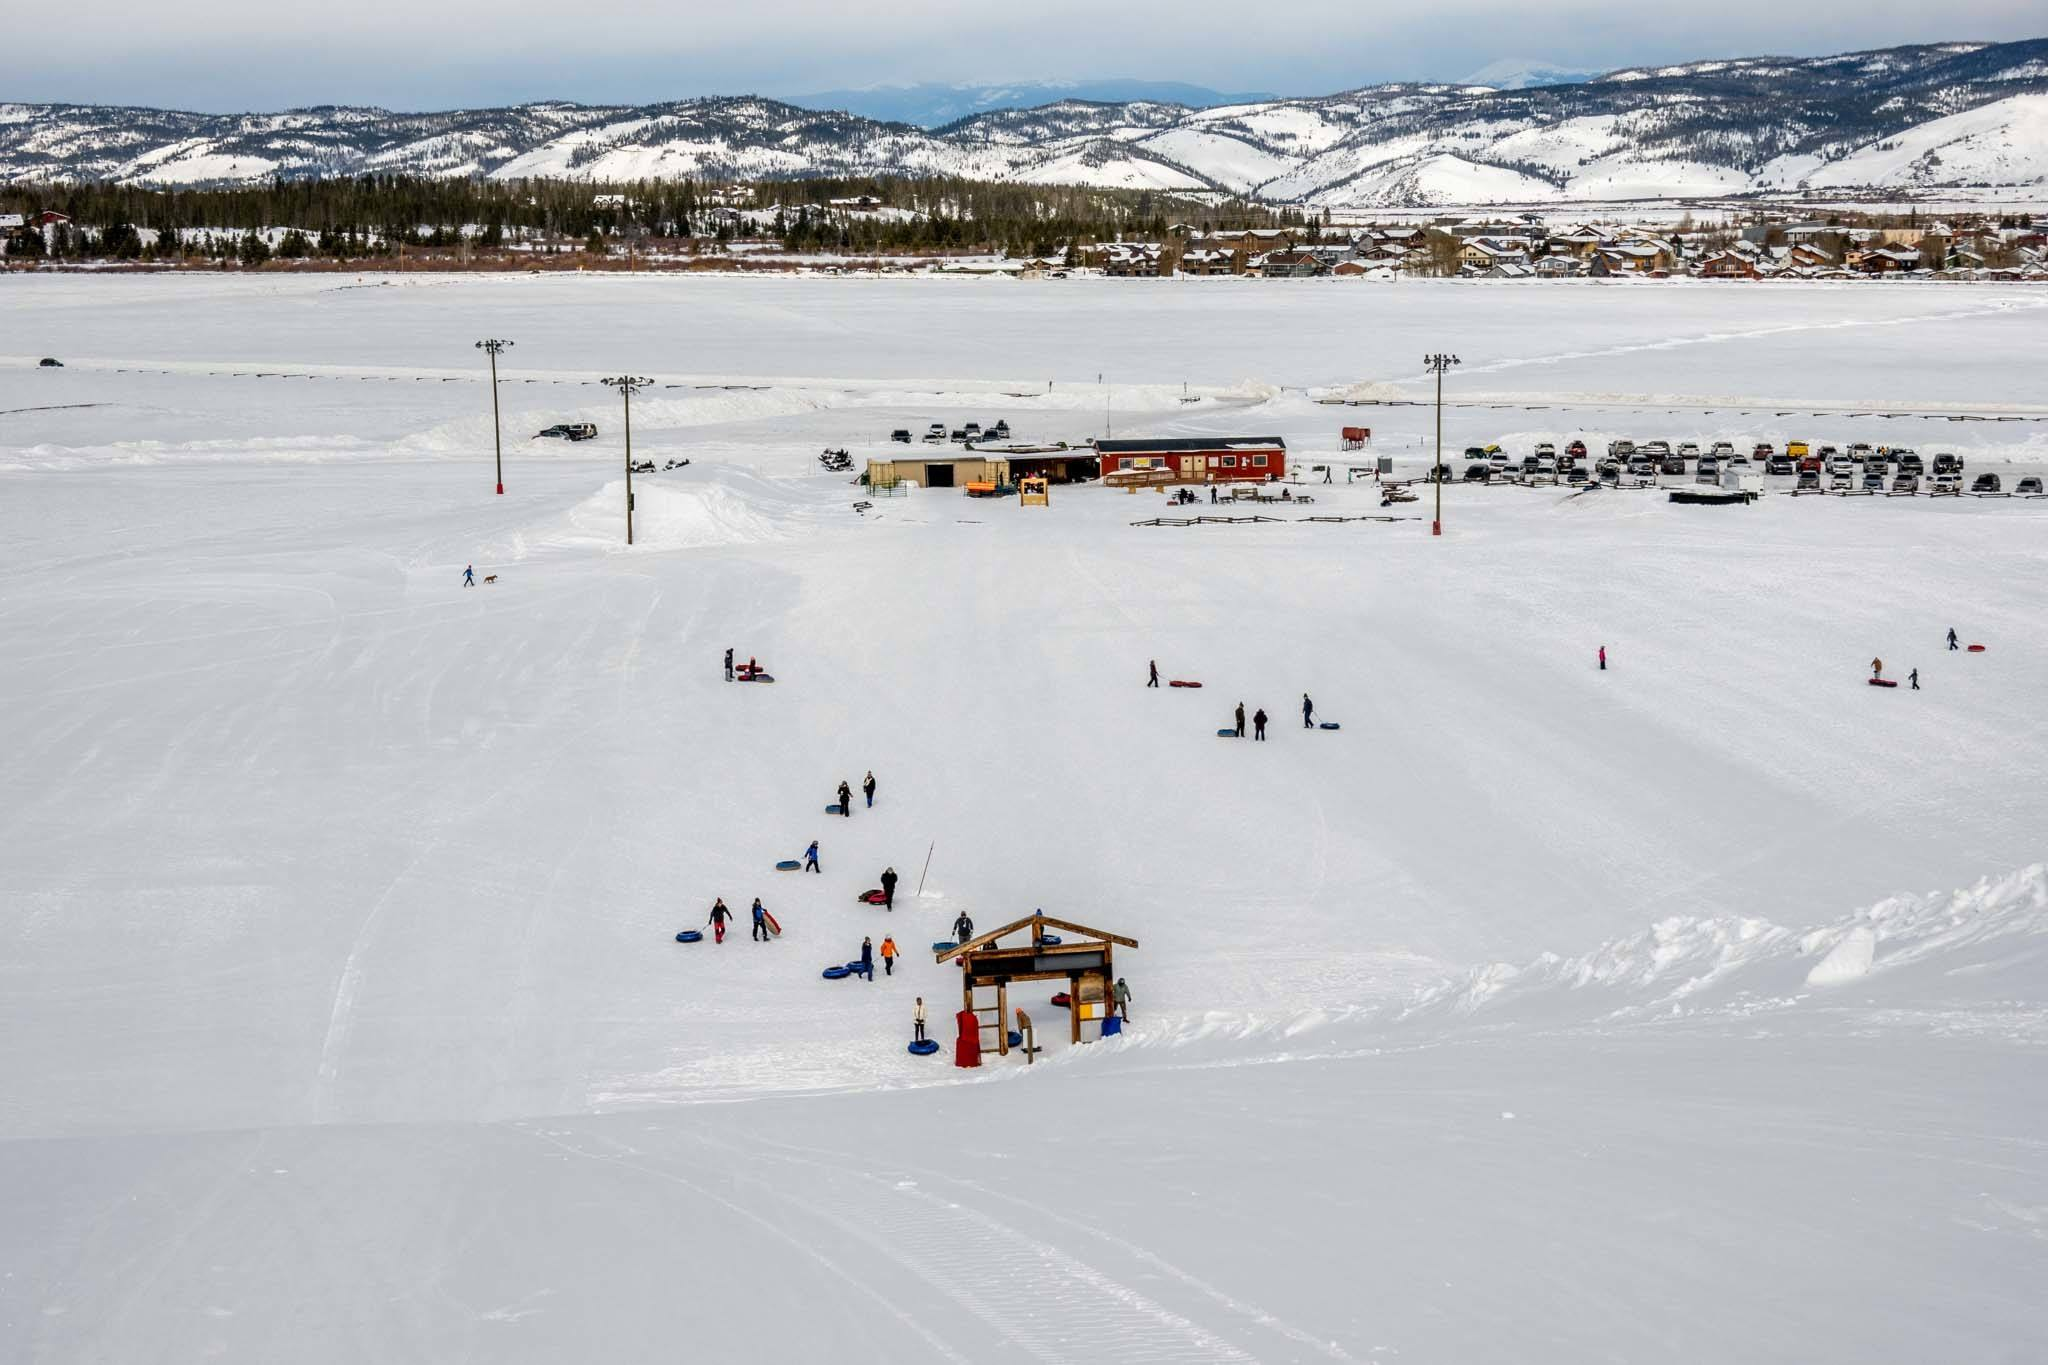 View from the top of the Fraser Tubing Hill in Winter Park